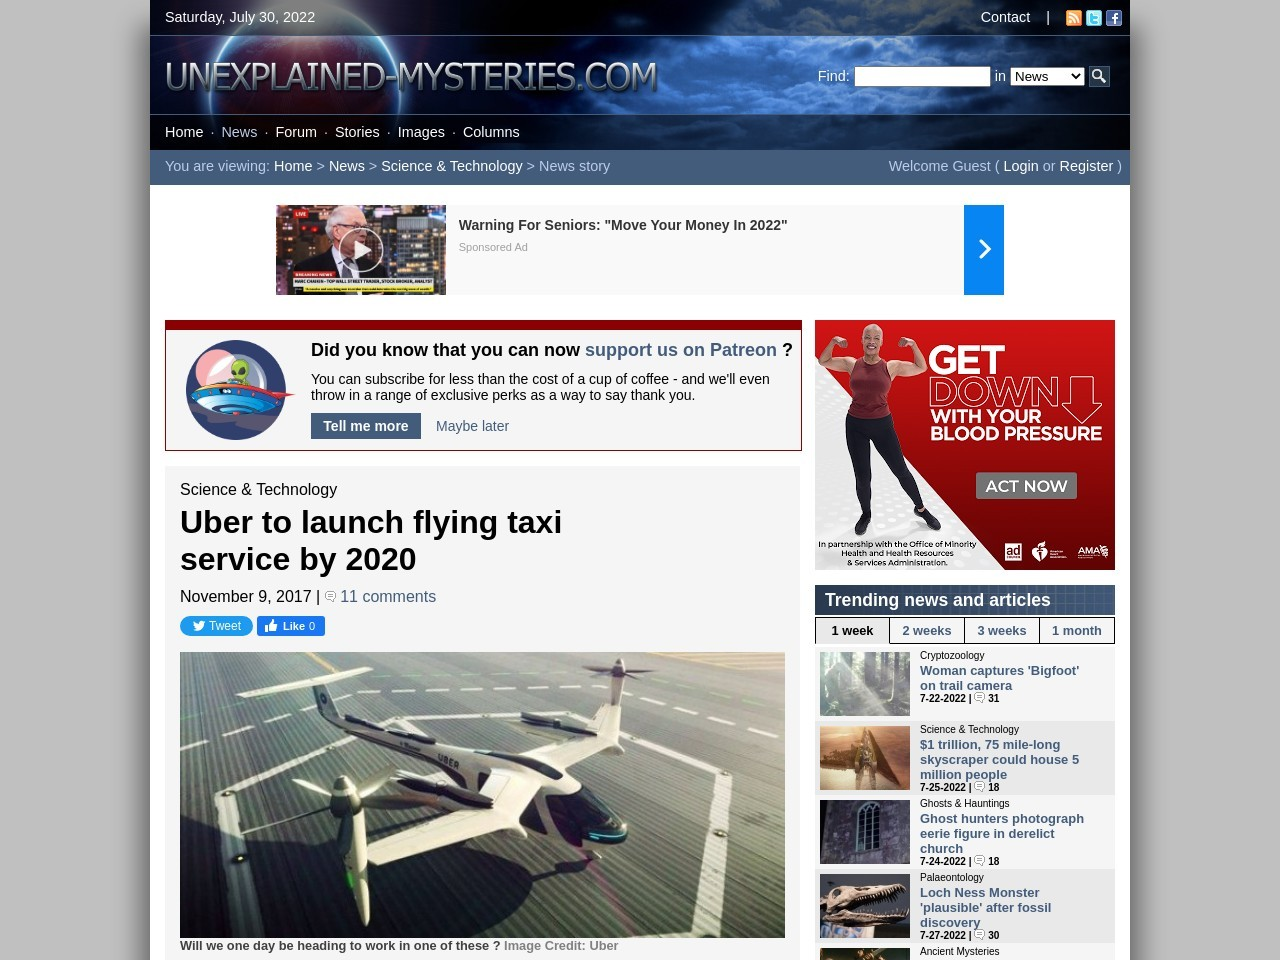 Uber to launch flying taxi service by 2020